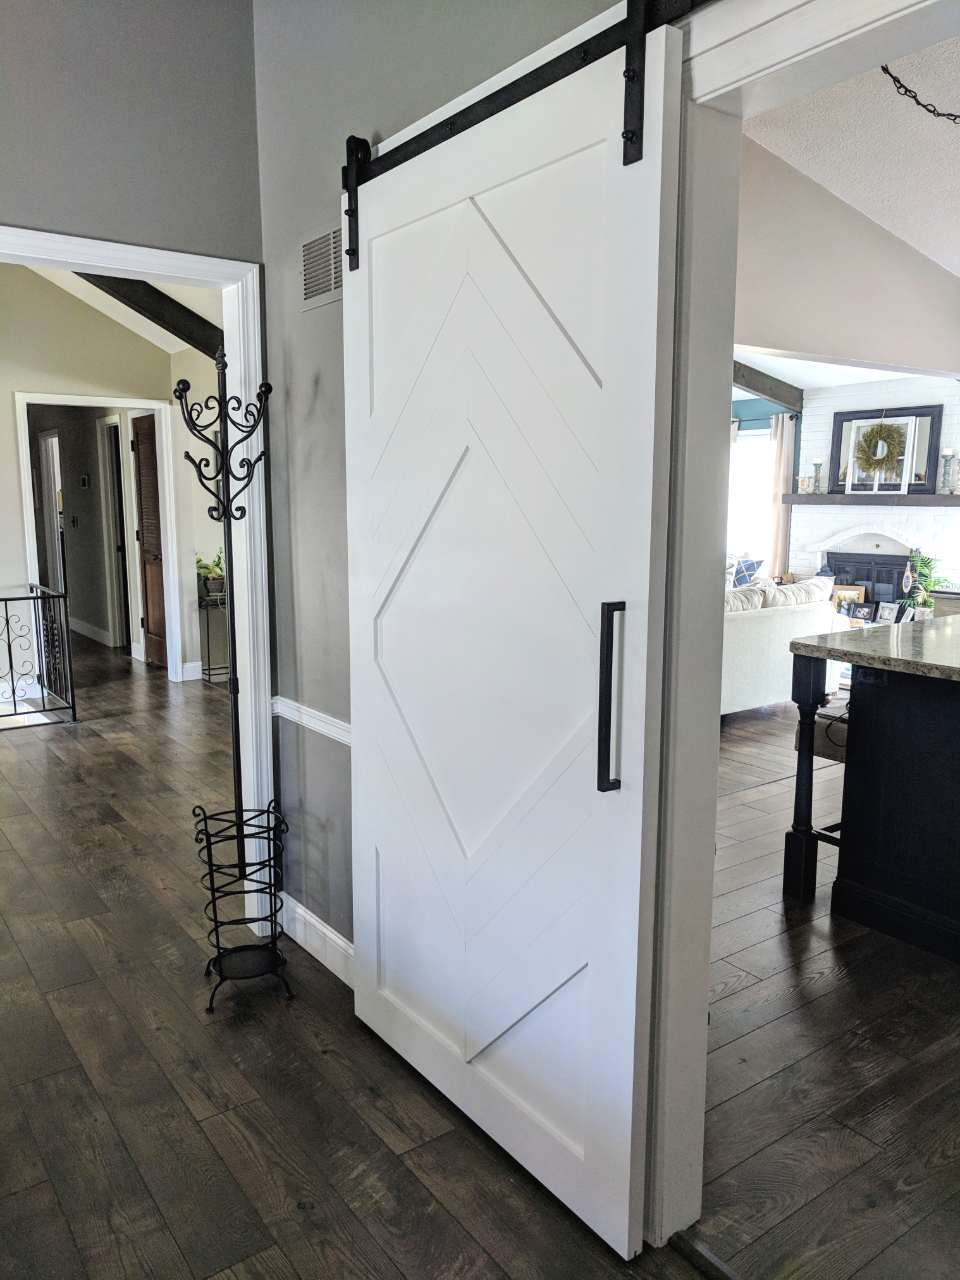 Hollow Diamond Barn Door Walston Door Company N Kansas City Mo Barn Door Farmhouse Doors Modern Barn Door